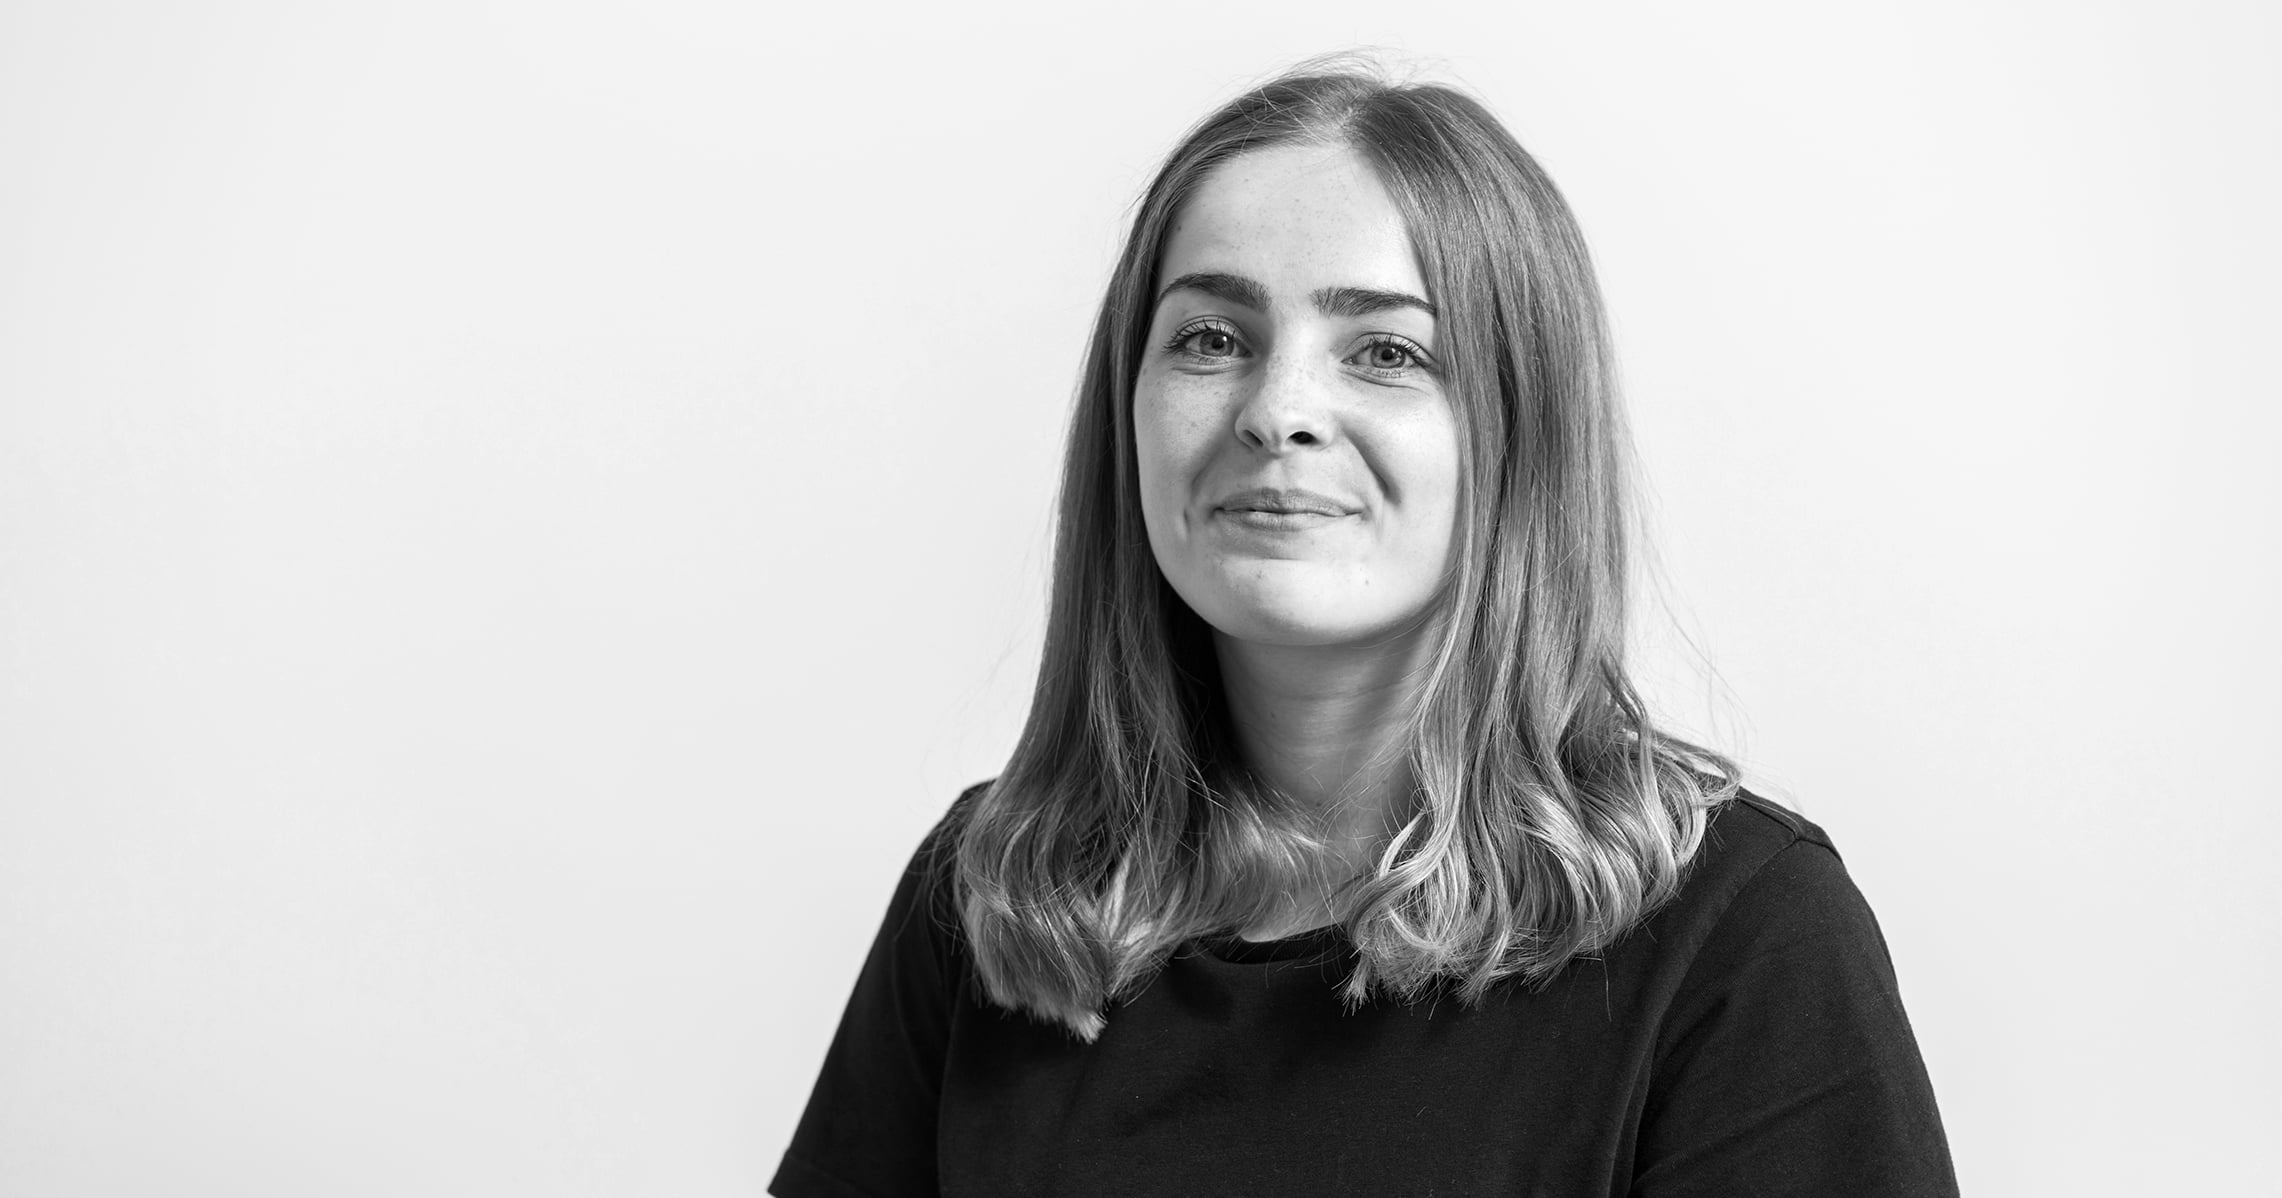 Interview with Abbie Goodall, Digital Marketing Executive